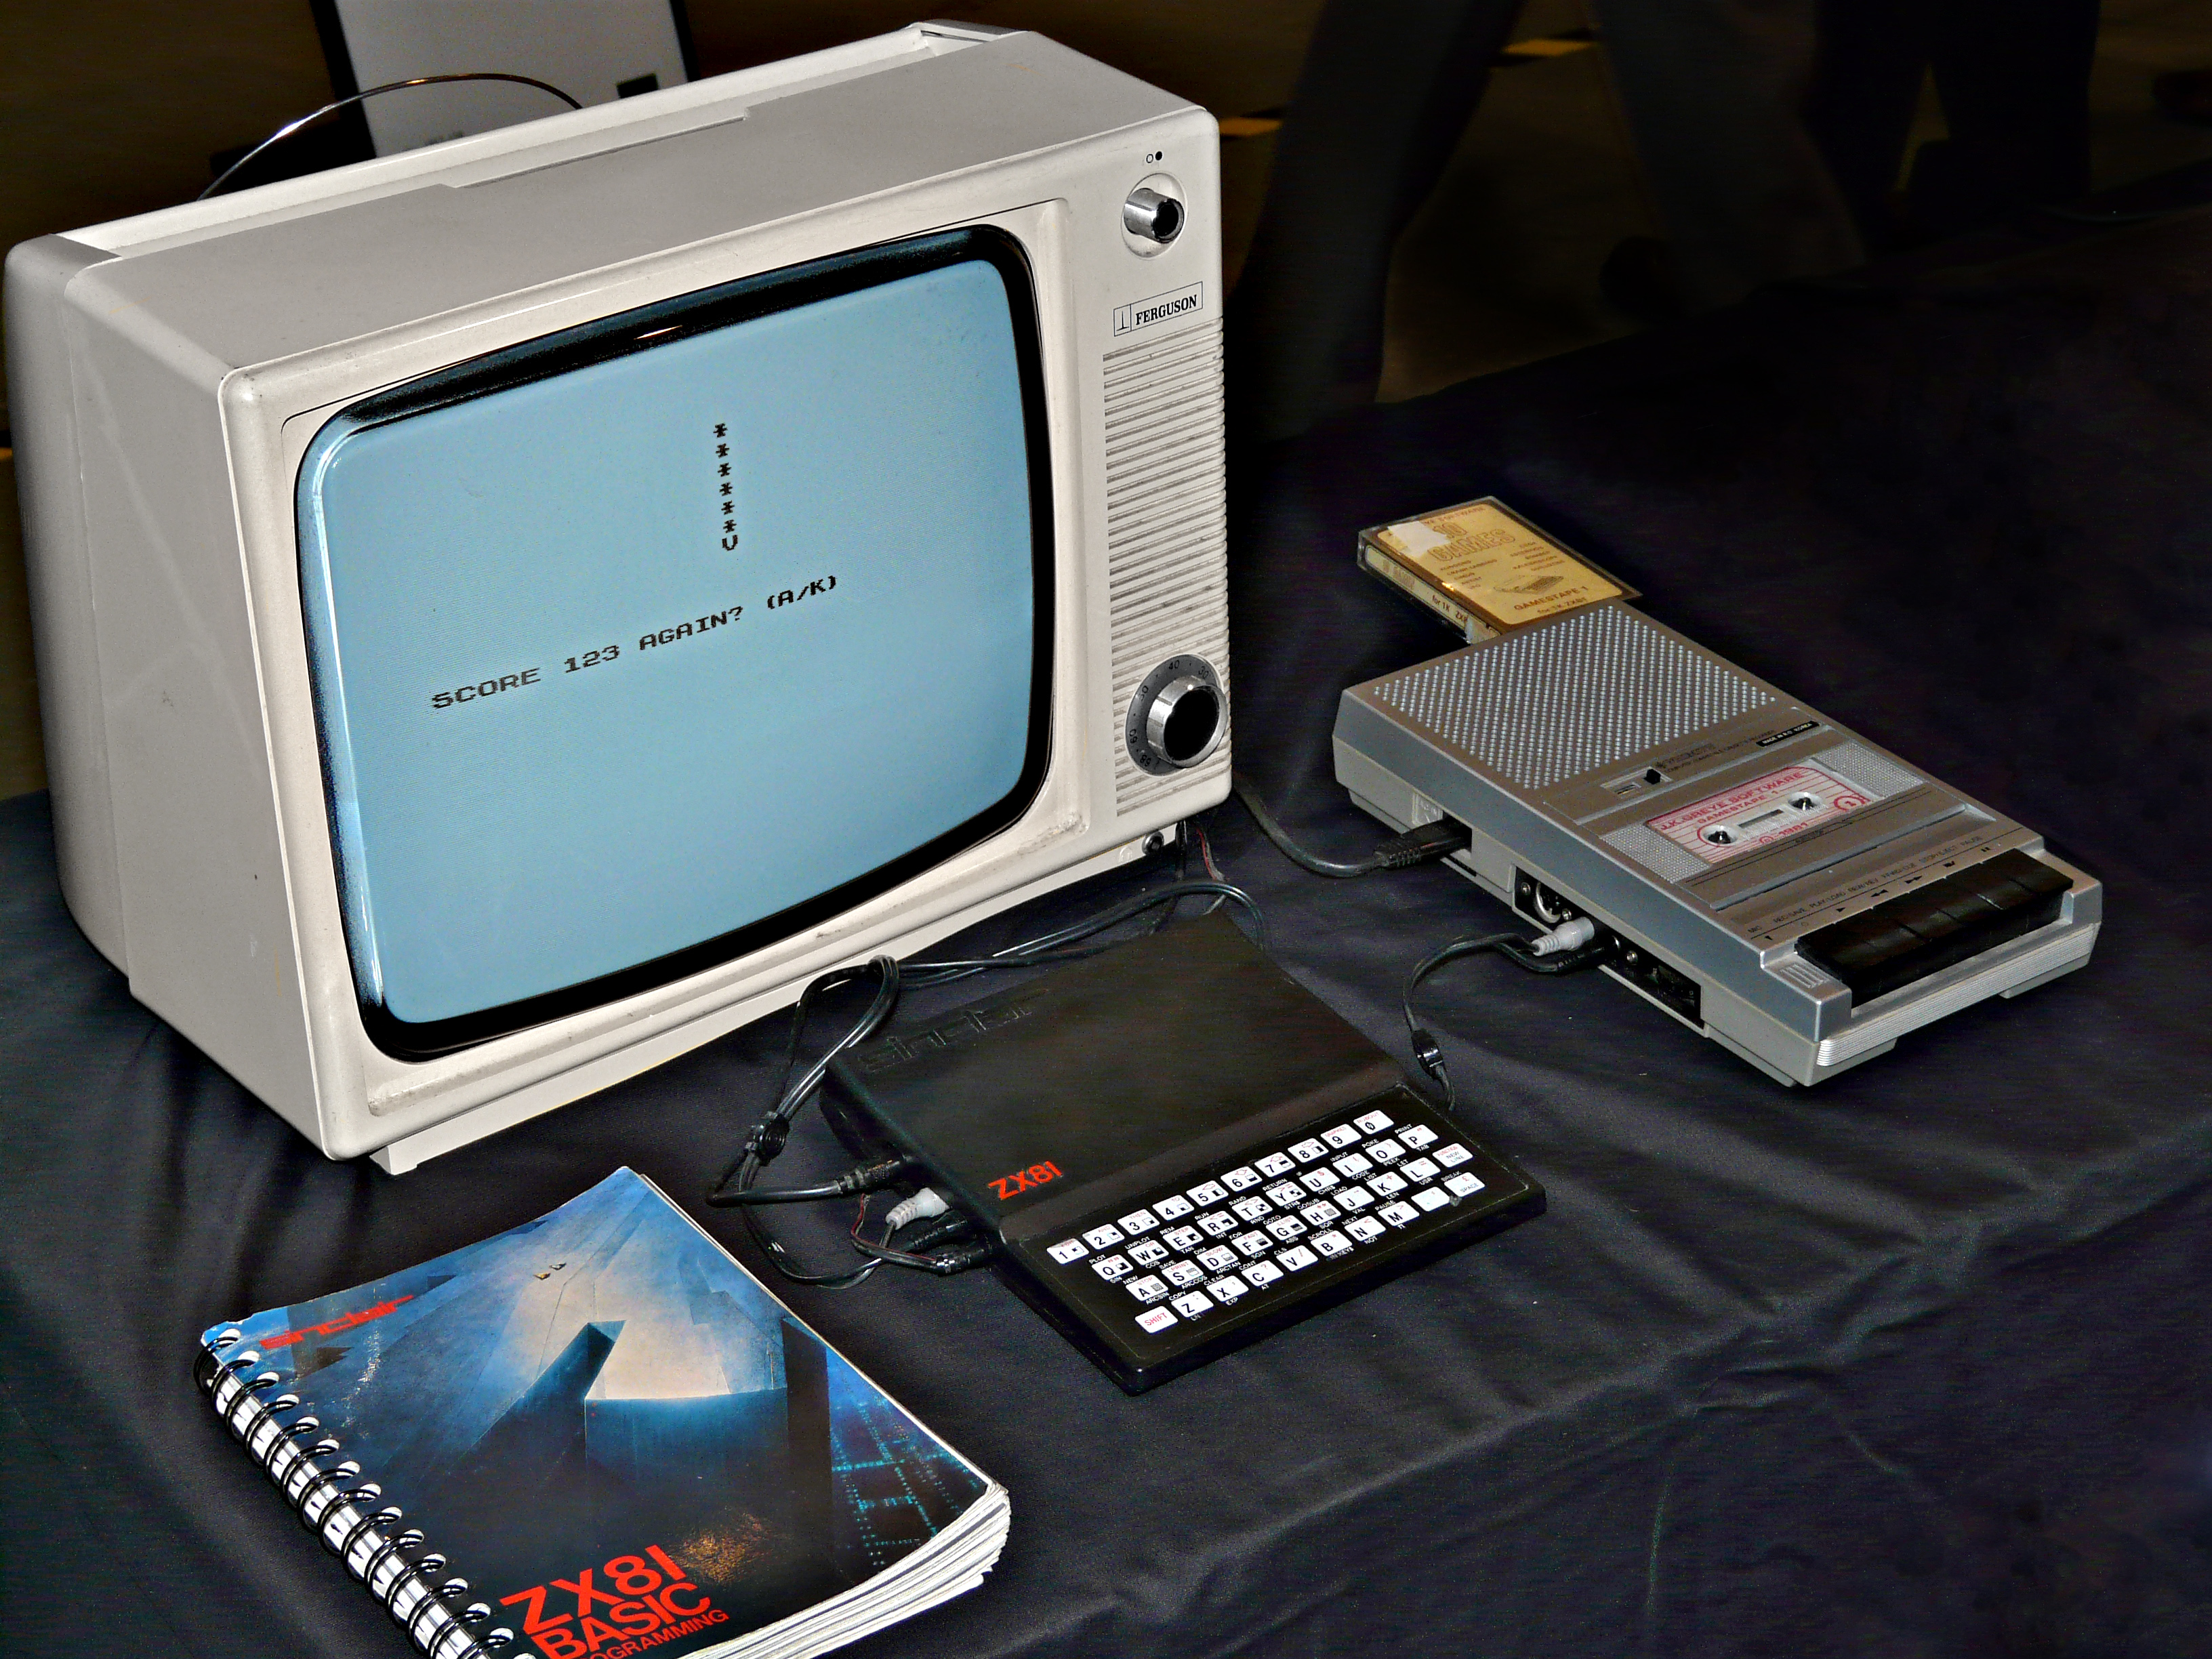 Sinclair_ZX81_Setup_PhotoManipped.jpg